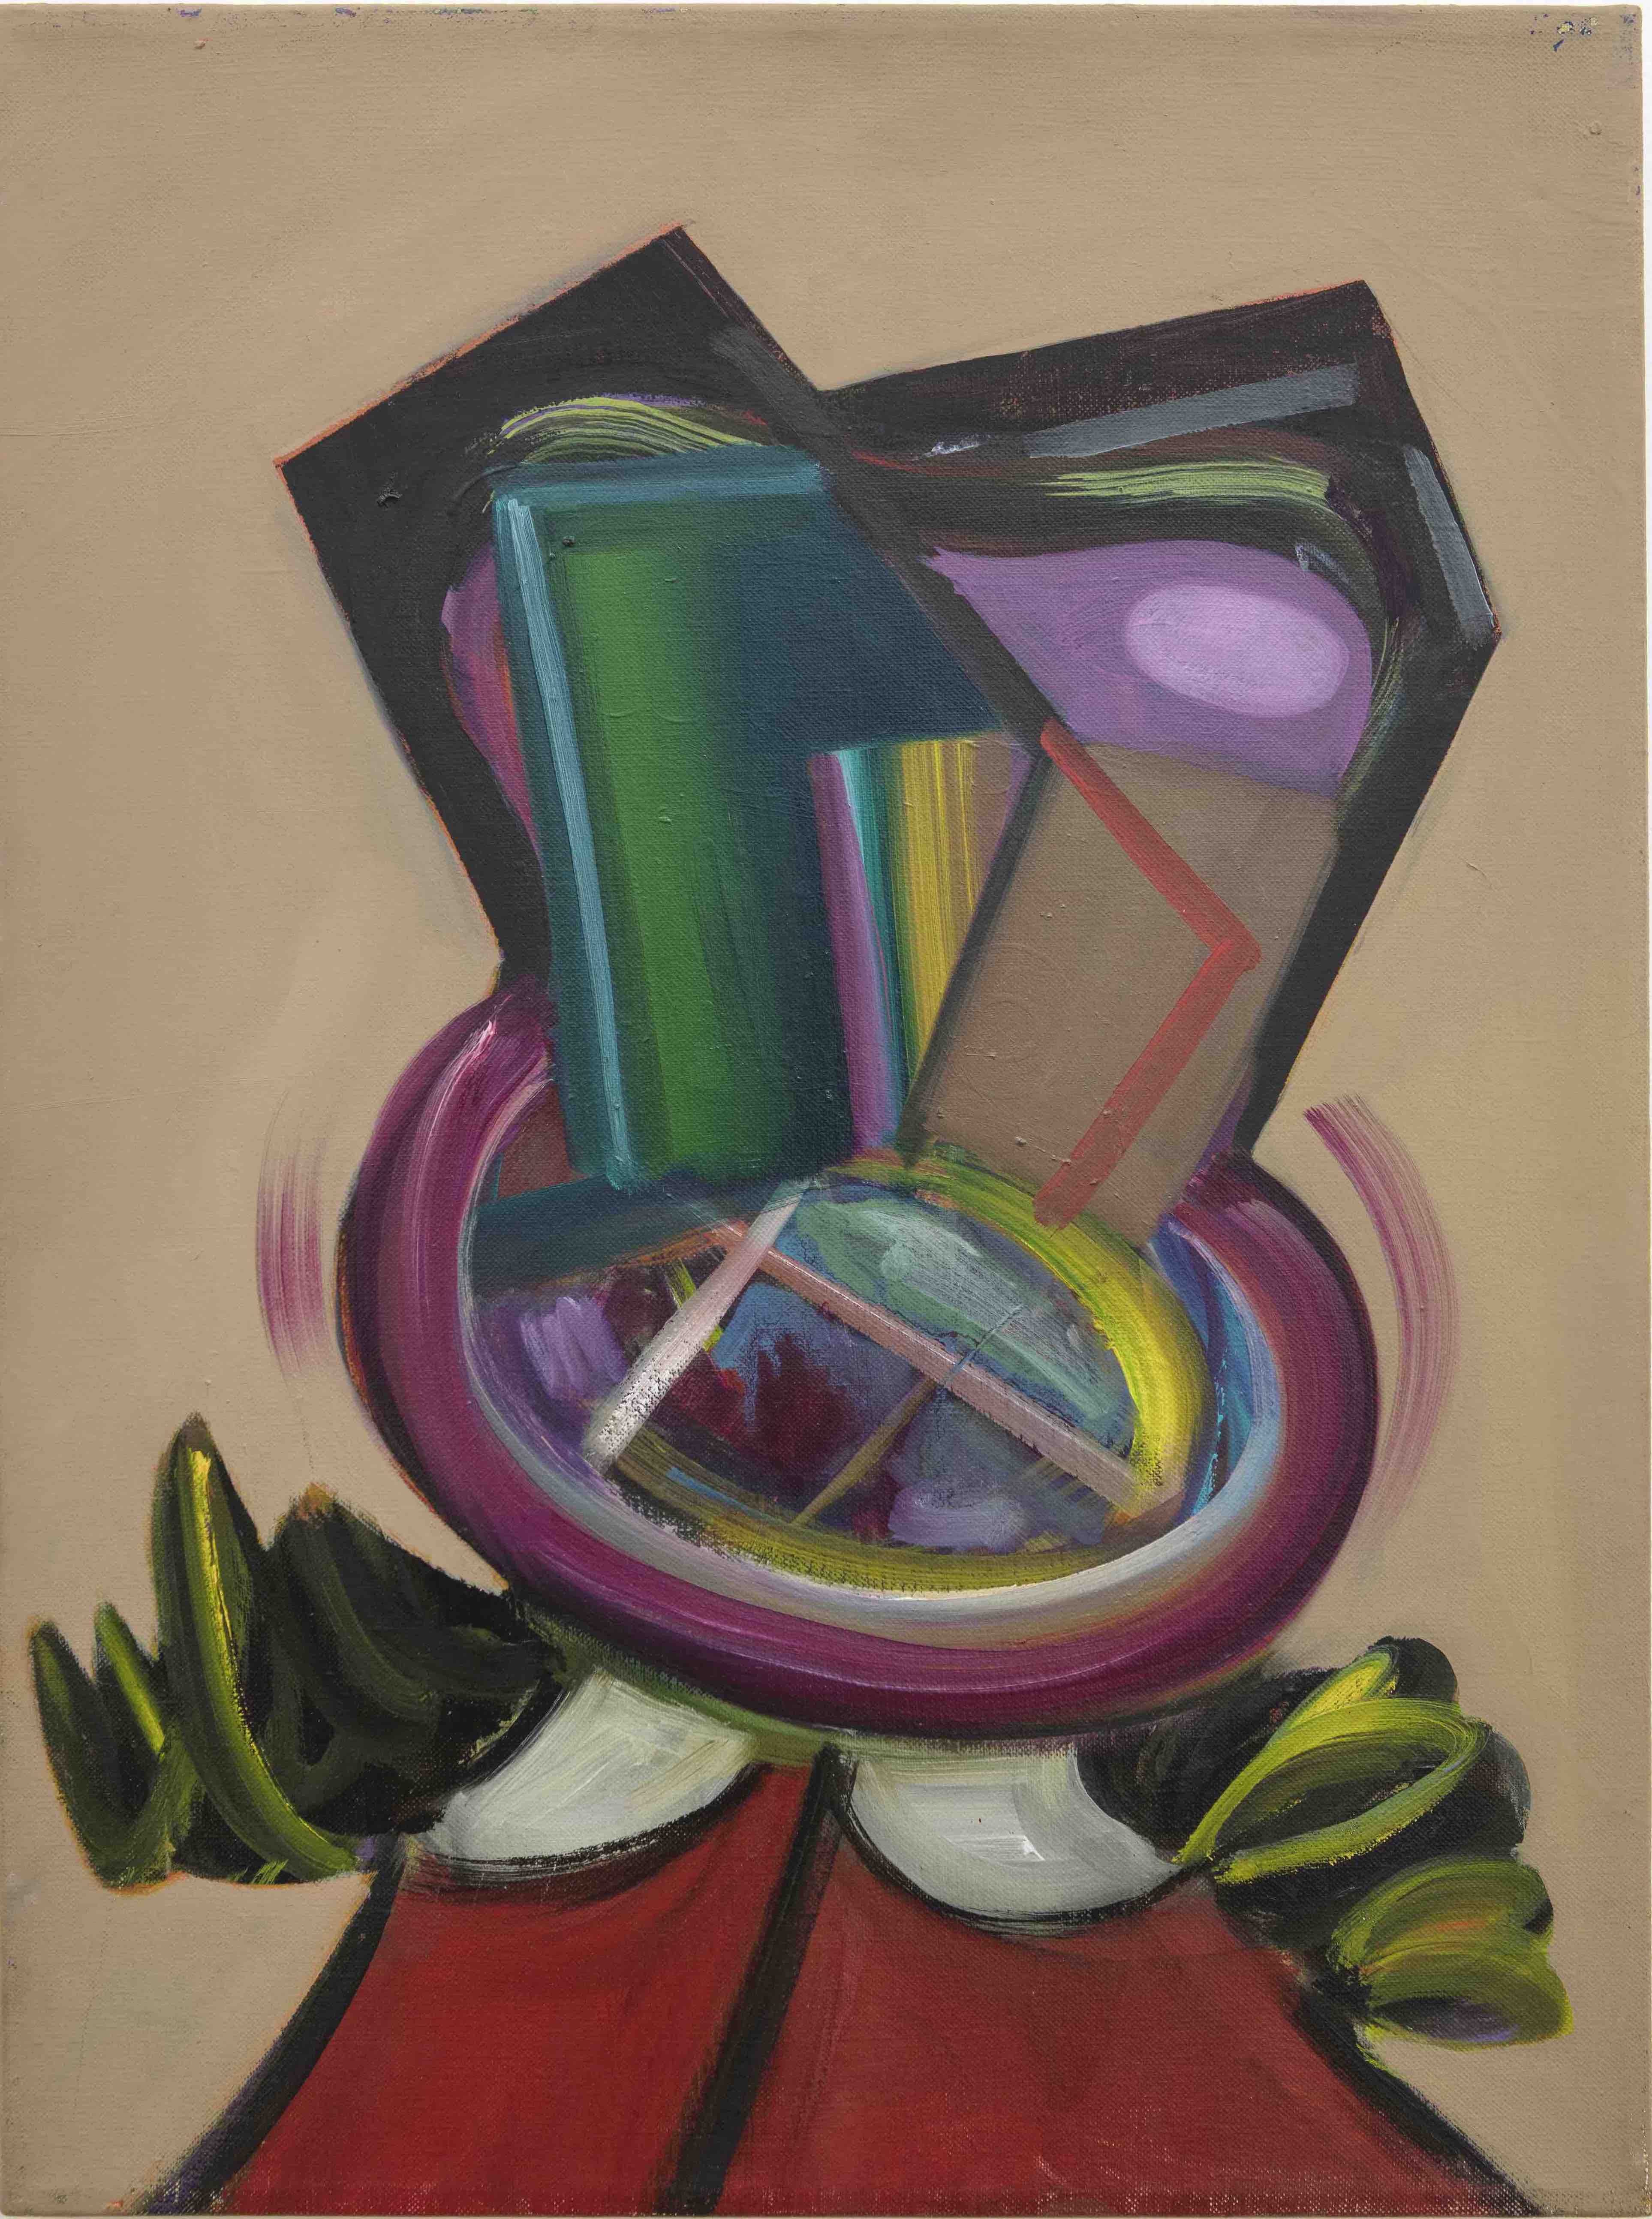 Little Lulu del Agitated Cubism, 2013, Oil on linen, 60 x 45 cm